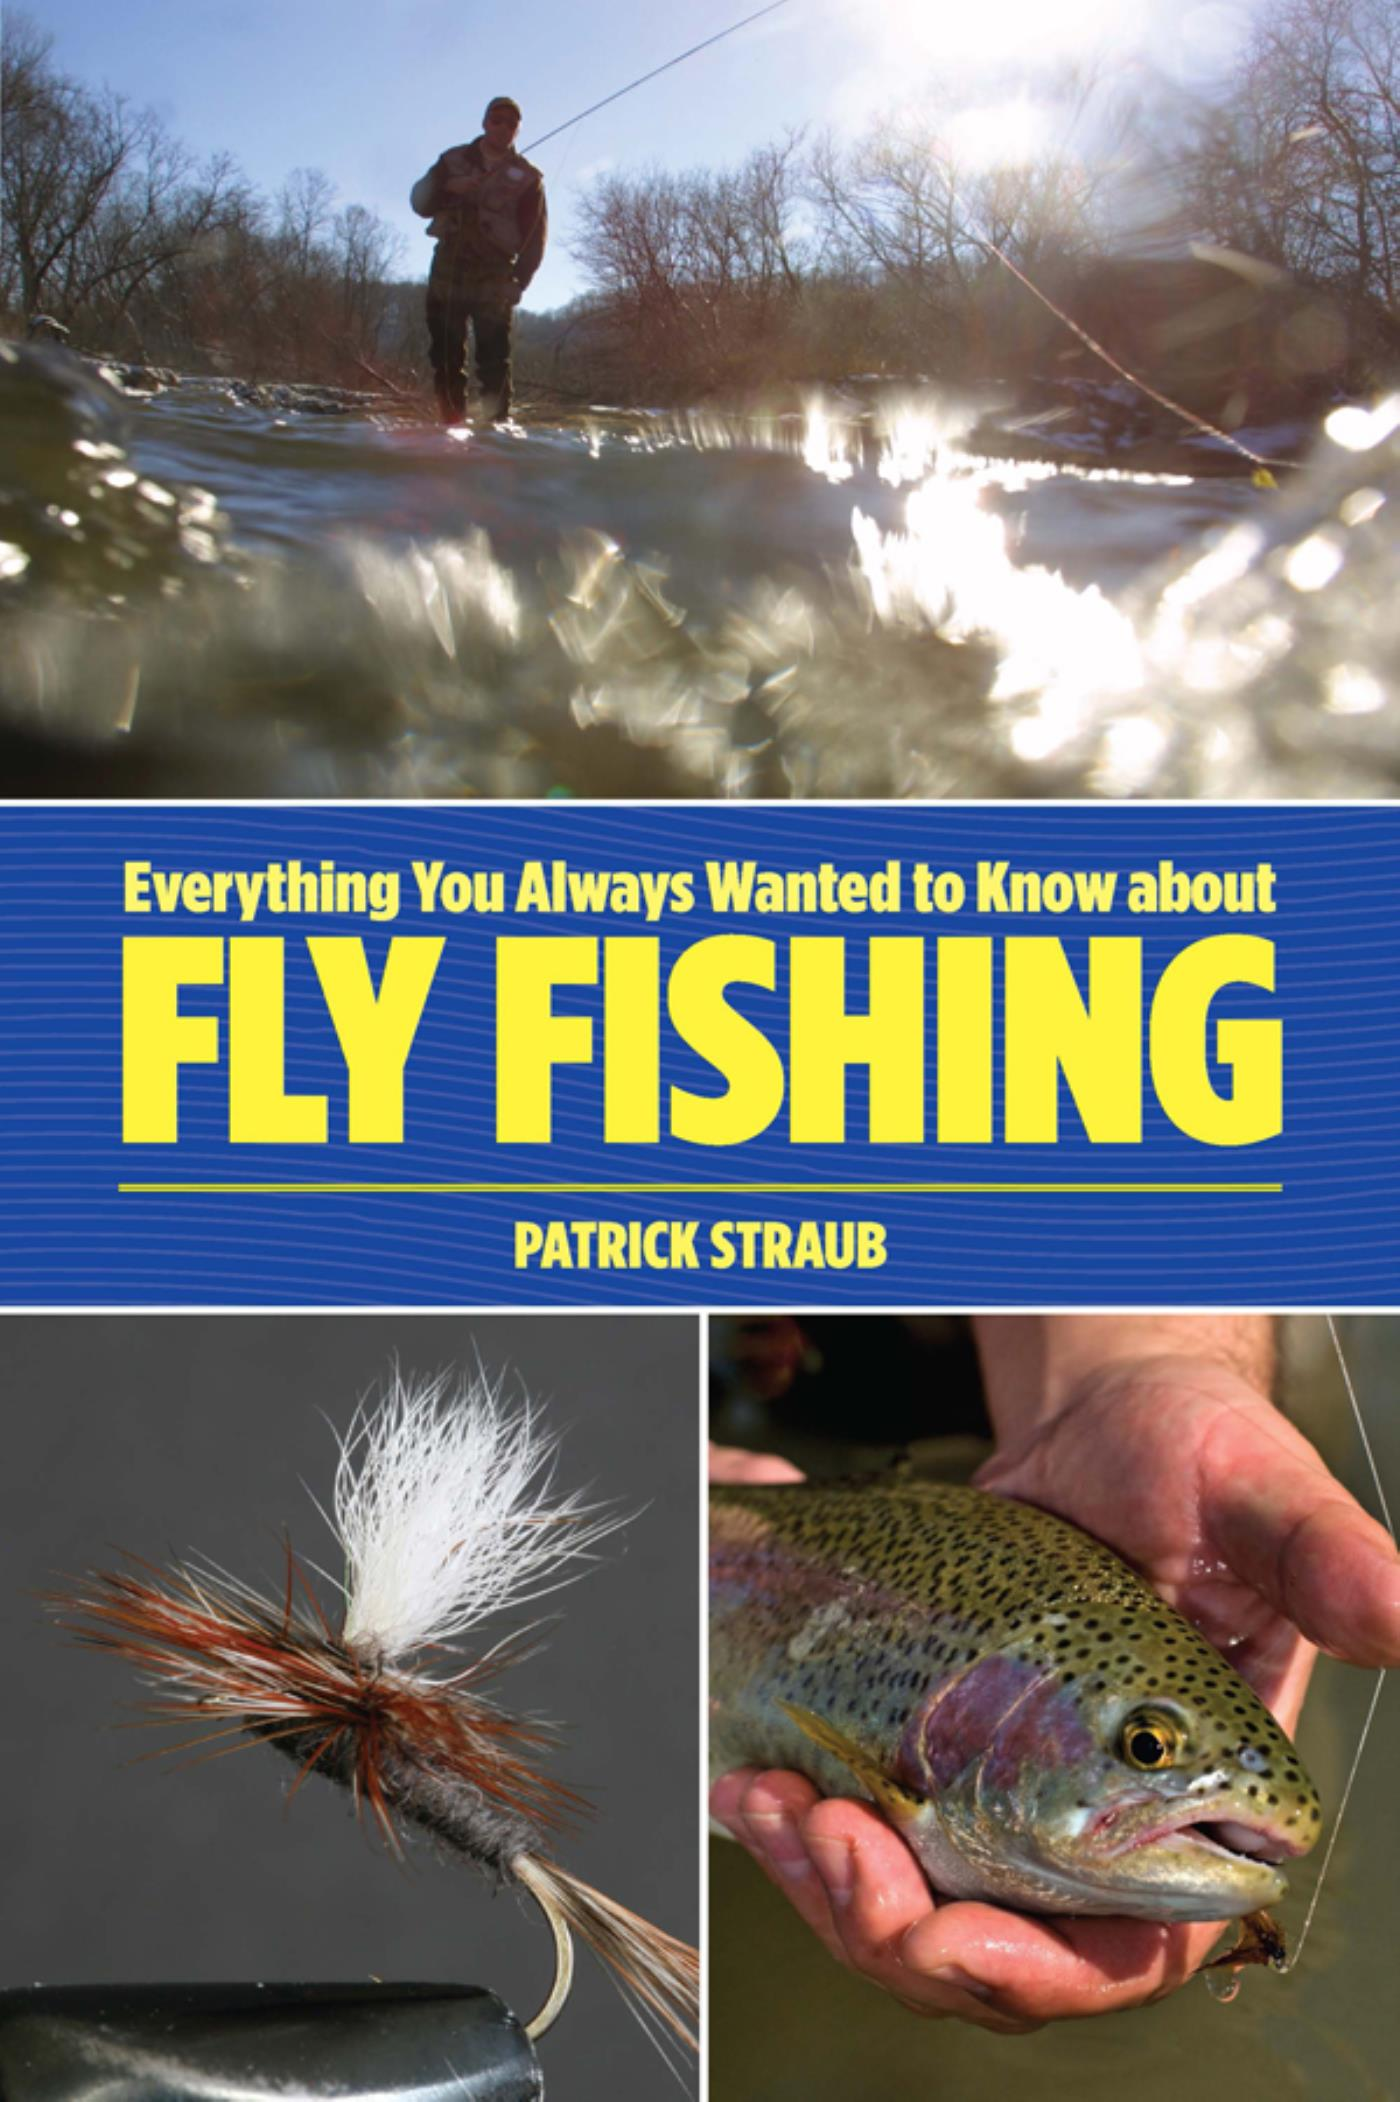 Everything You Always Wanted to Know about Fly Fishing